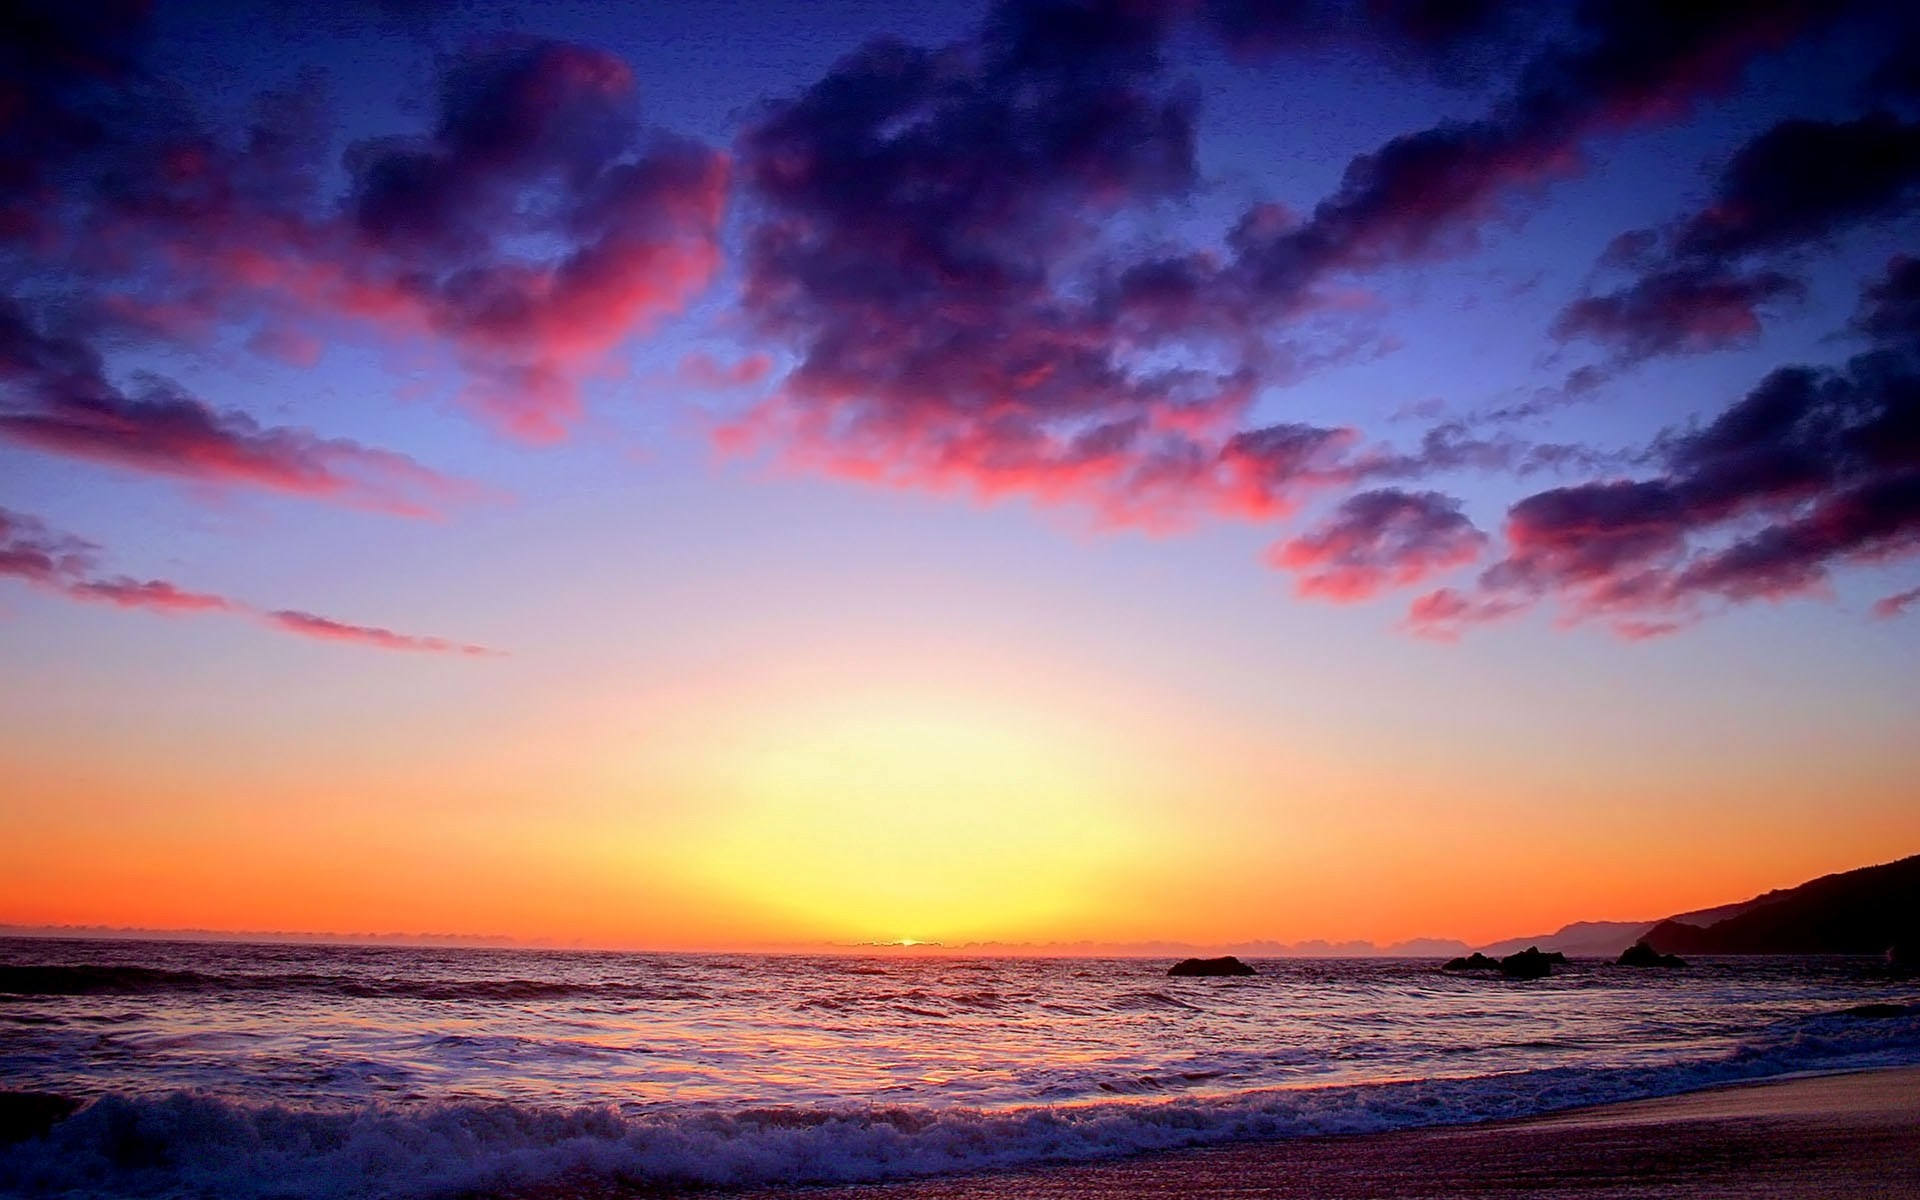 colorful sunset twilight wallpapers in jpg format for free download